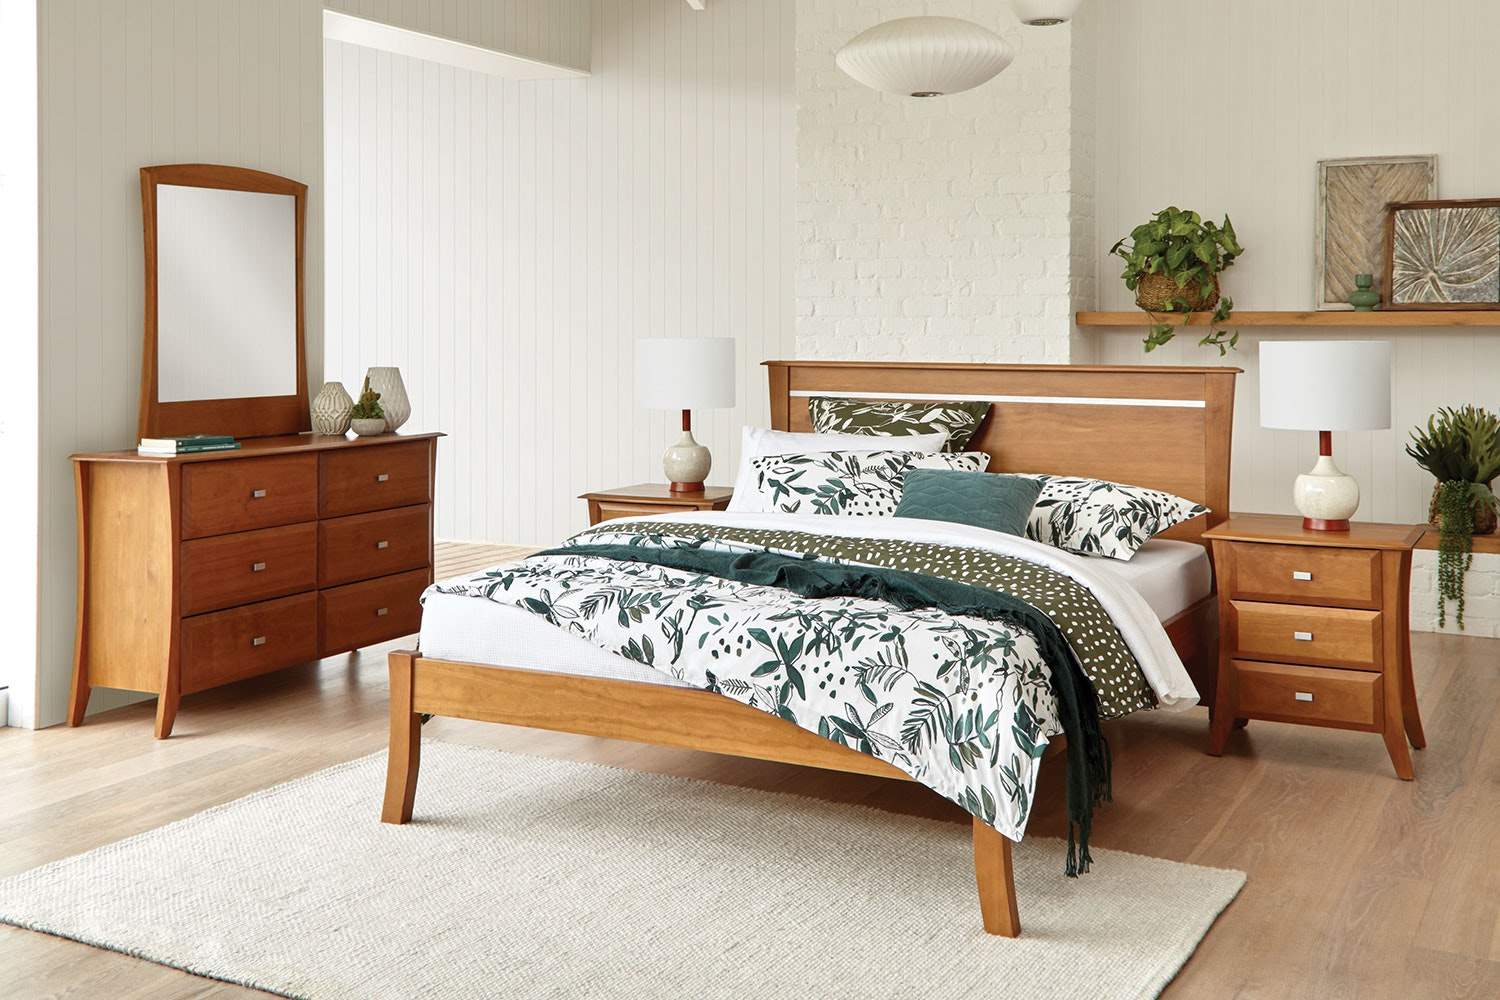 Lynbrook Queen Bed Frame by Coastwood Furniture